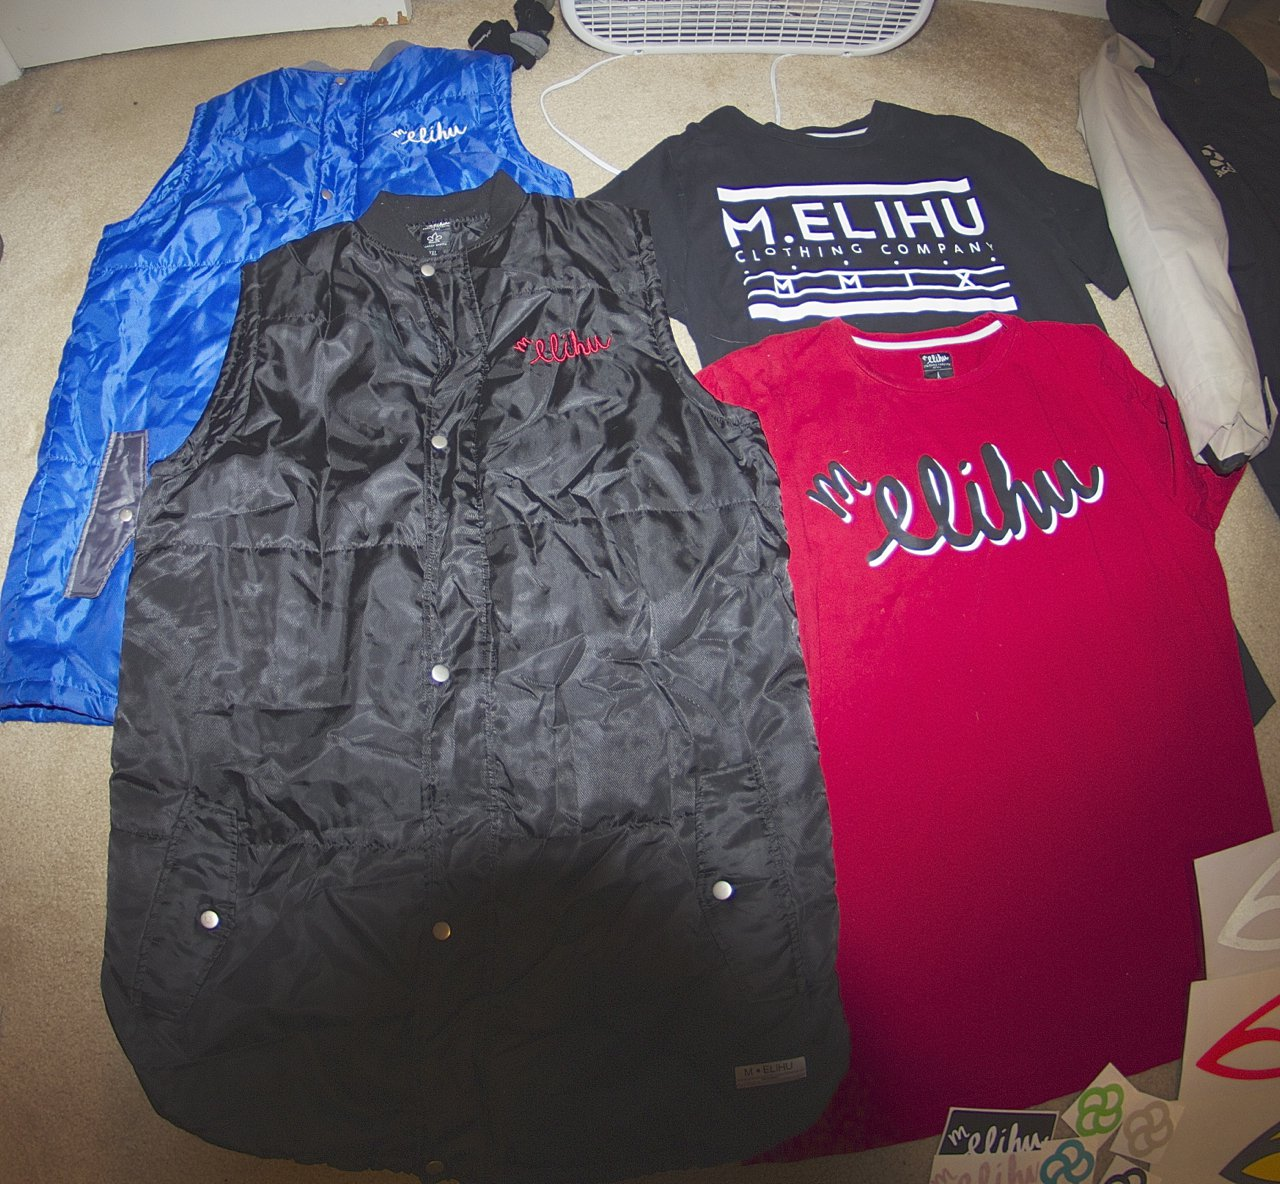 M.elihu vests/tees